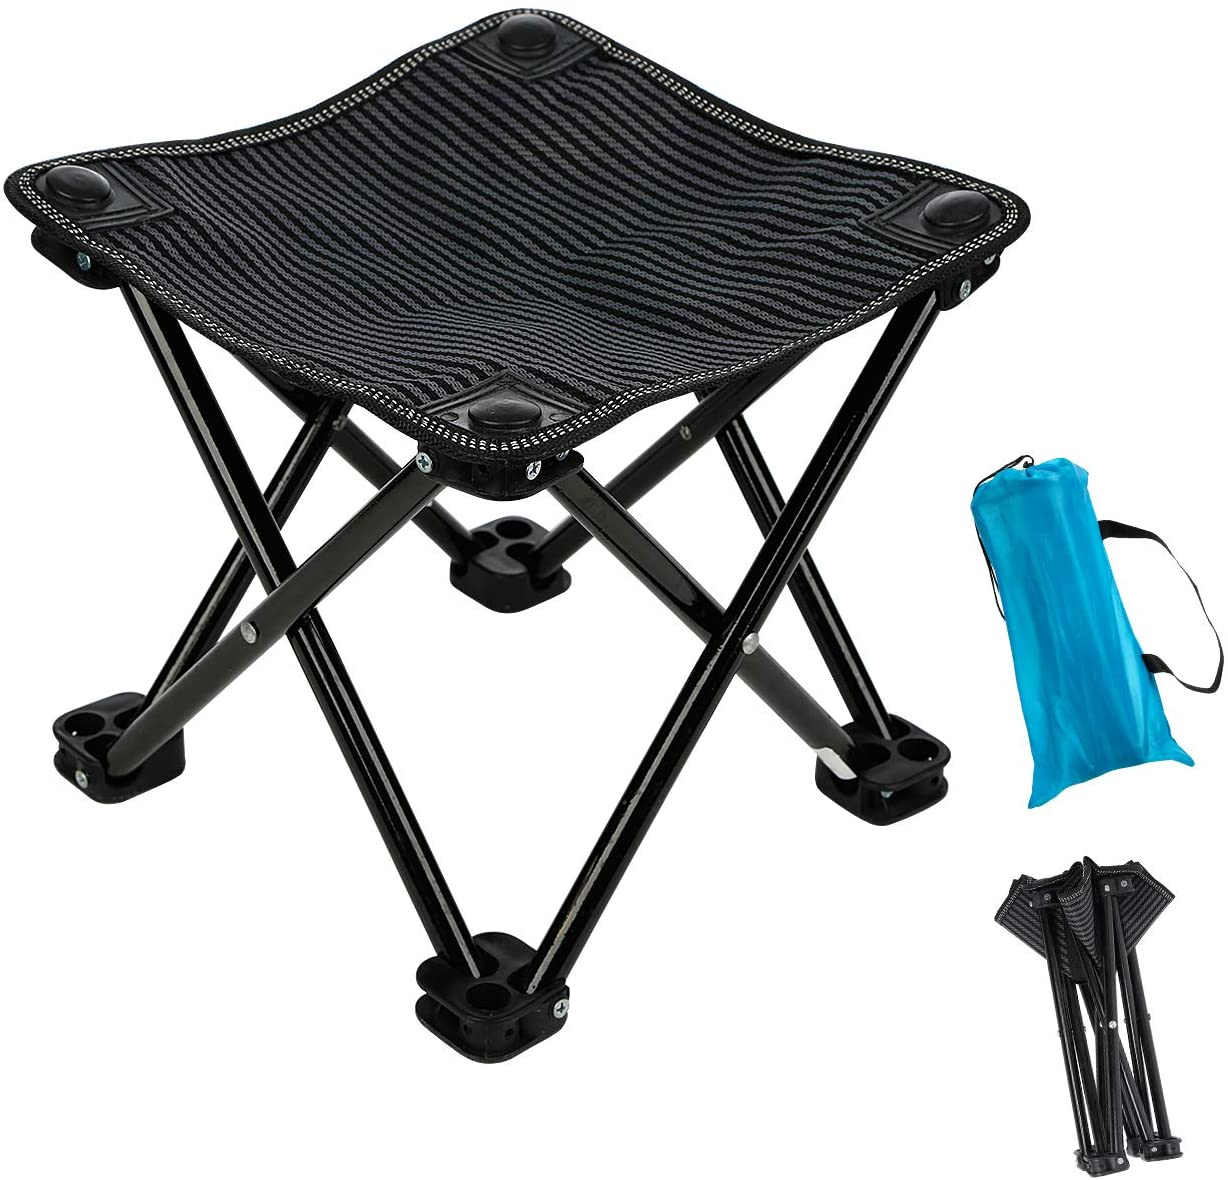 Outdoor Folding Chair Portable Recliner Retractable Stool Fishing Camping Hiking